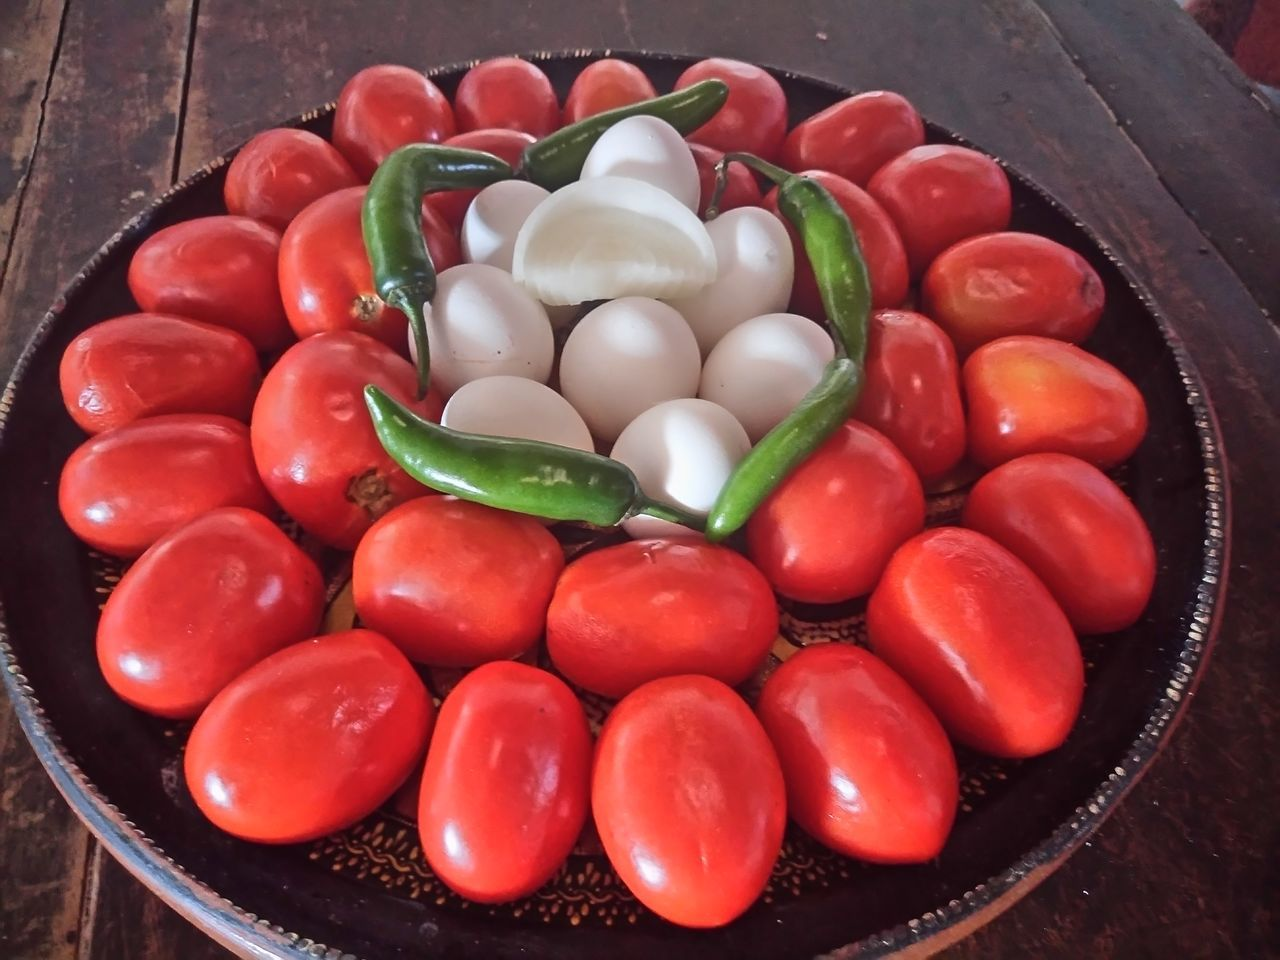 Huevos a la mexicana Red Freshness Food Food And Drink Healthy Eating No People Close-up Ready-to-eat Indoors  Day Eggs... Mexico Tomatoes Chilies Onion Egg Mexican Mexican Food EyeEmNewHere